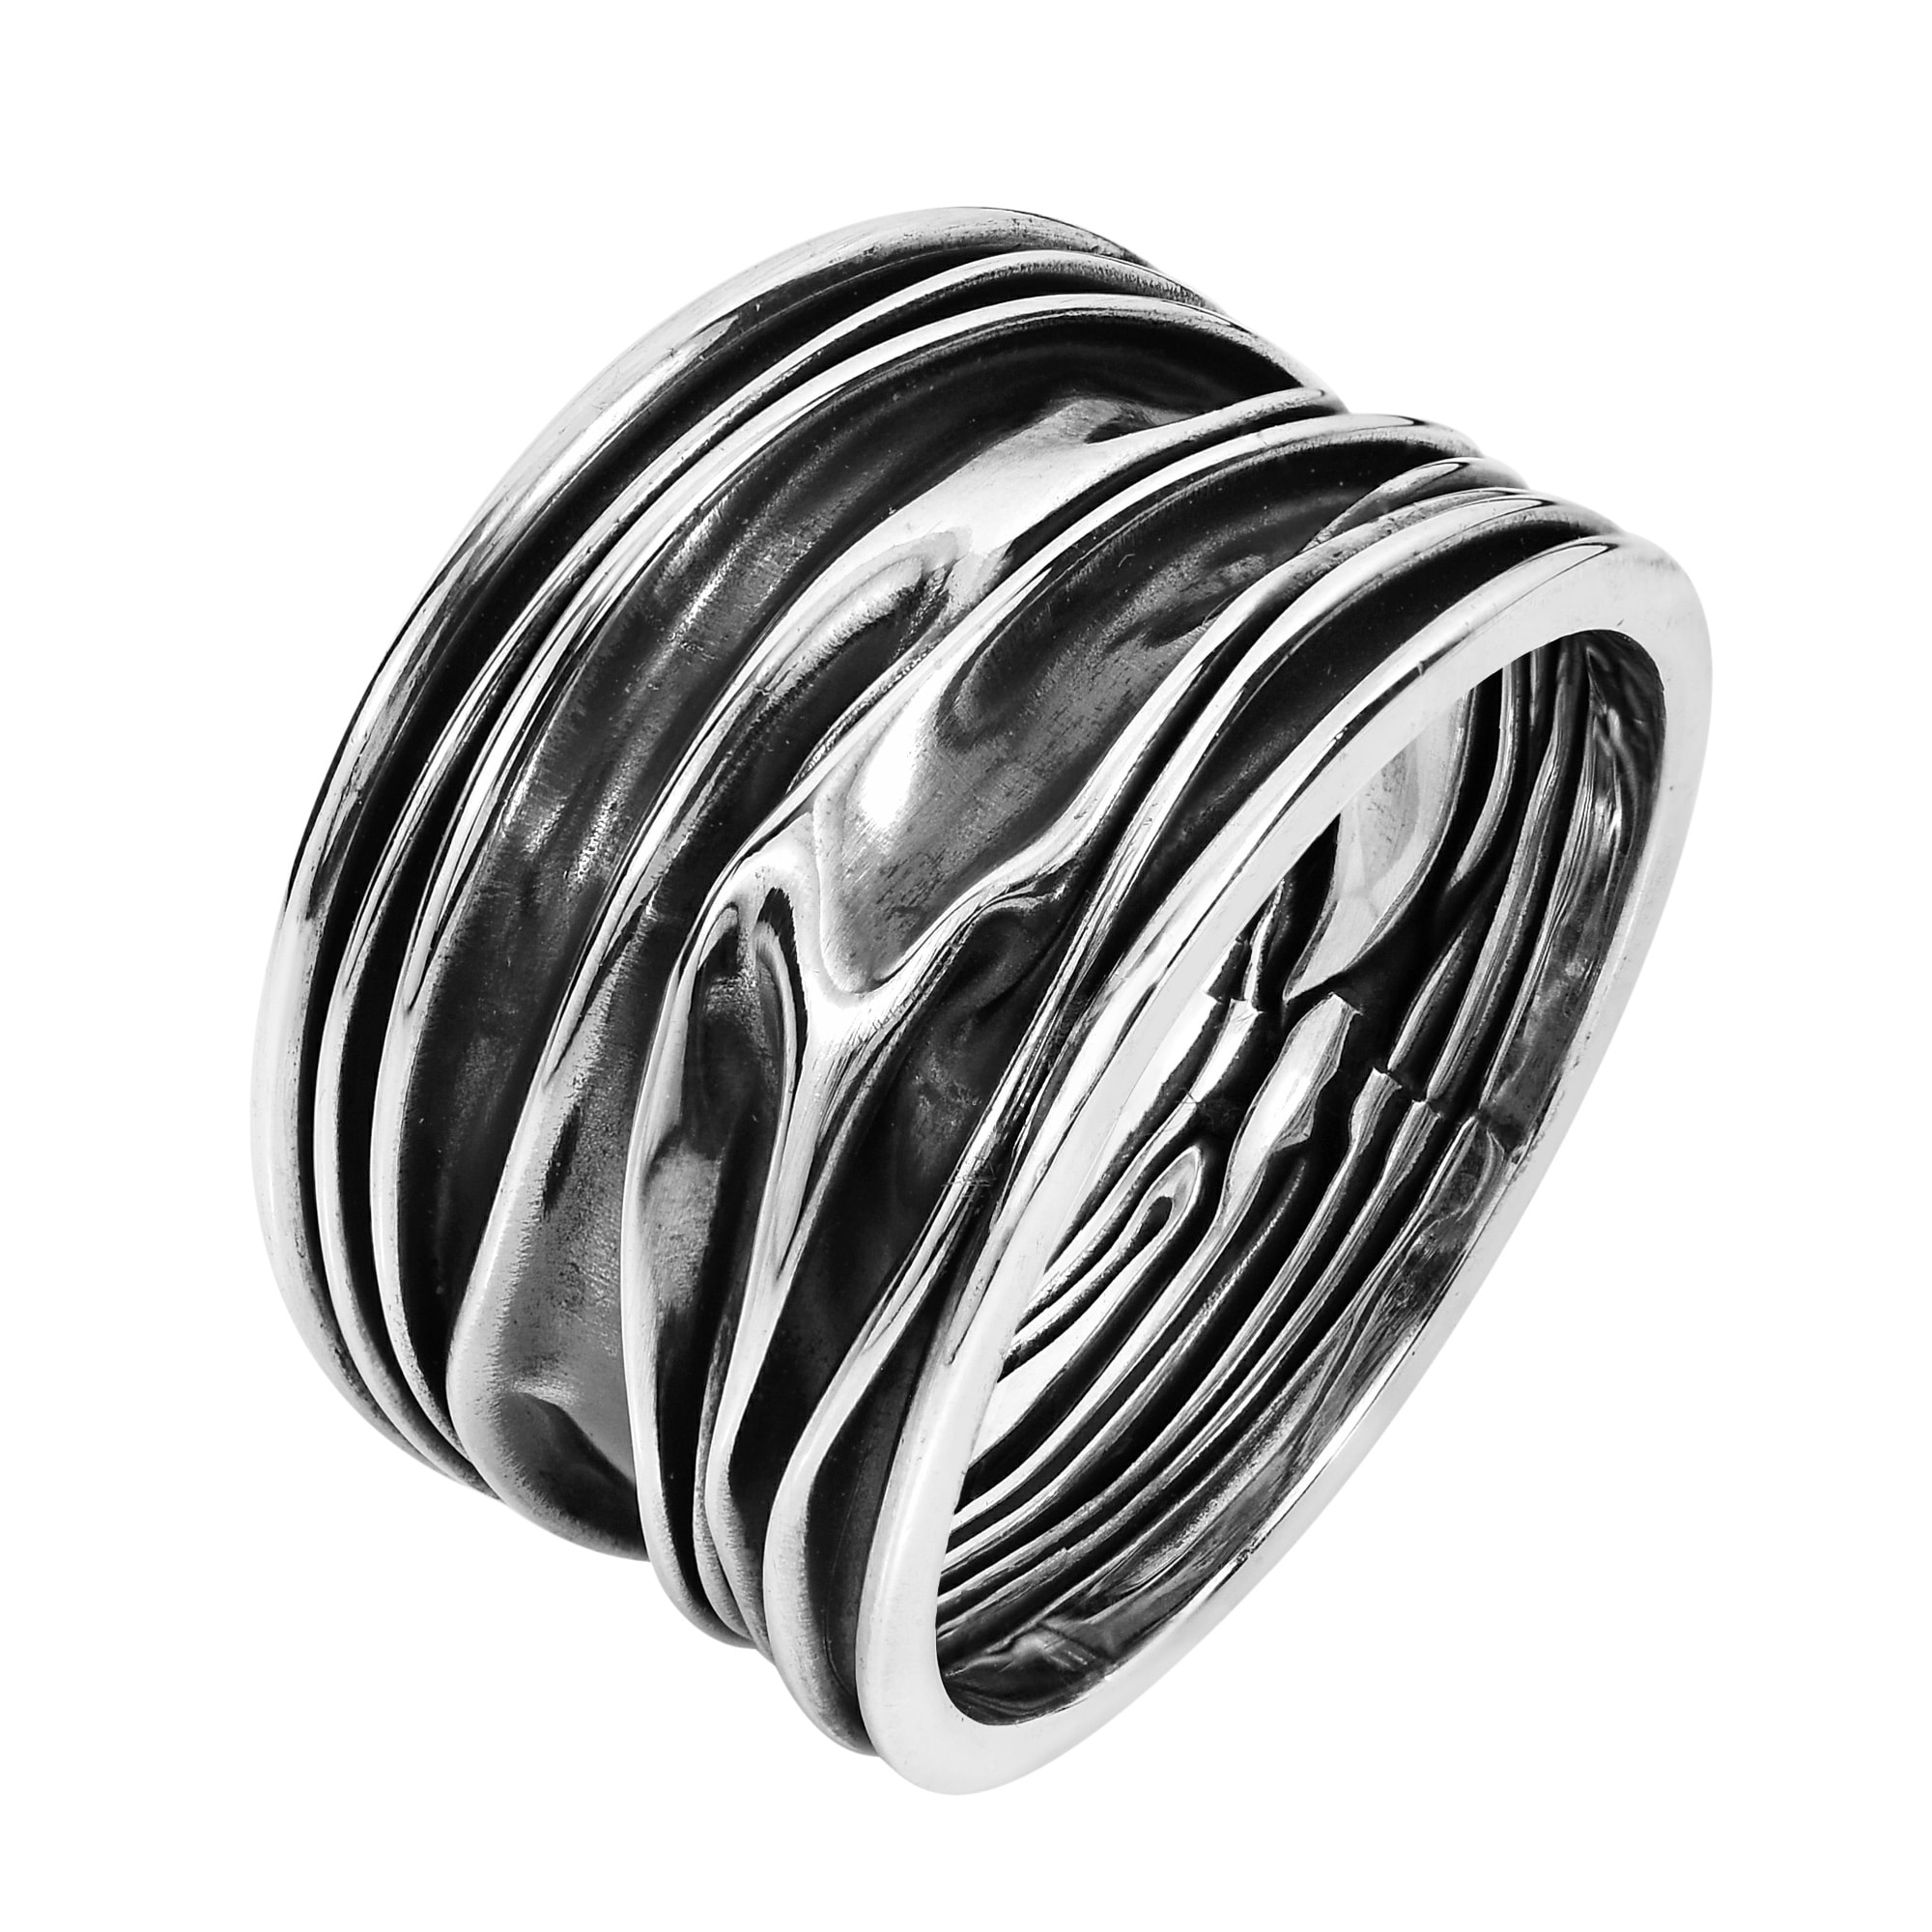 USA Seller Little Waves Ring Sterling Silver 925 Best Price Jewelry Selectable